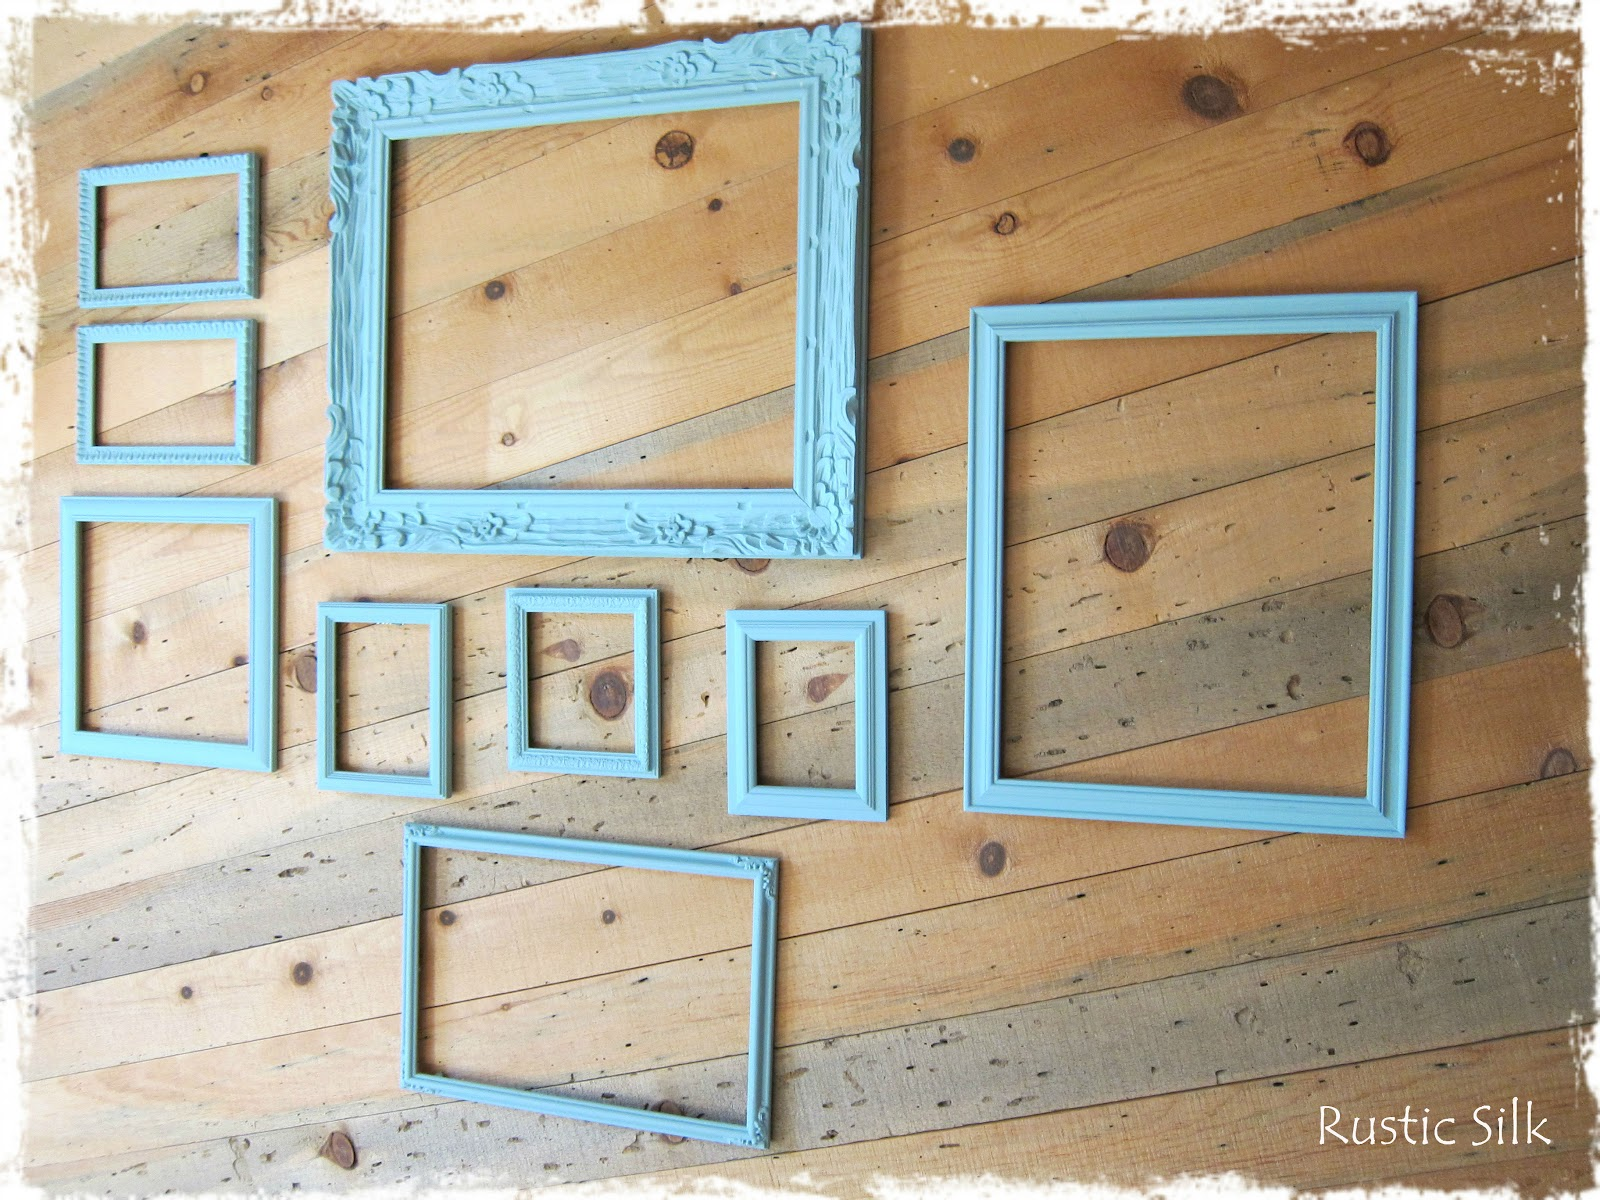 Rustic Silk: Chalk Paint: Cleaning and Painting